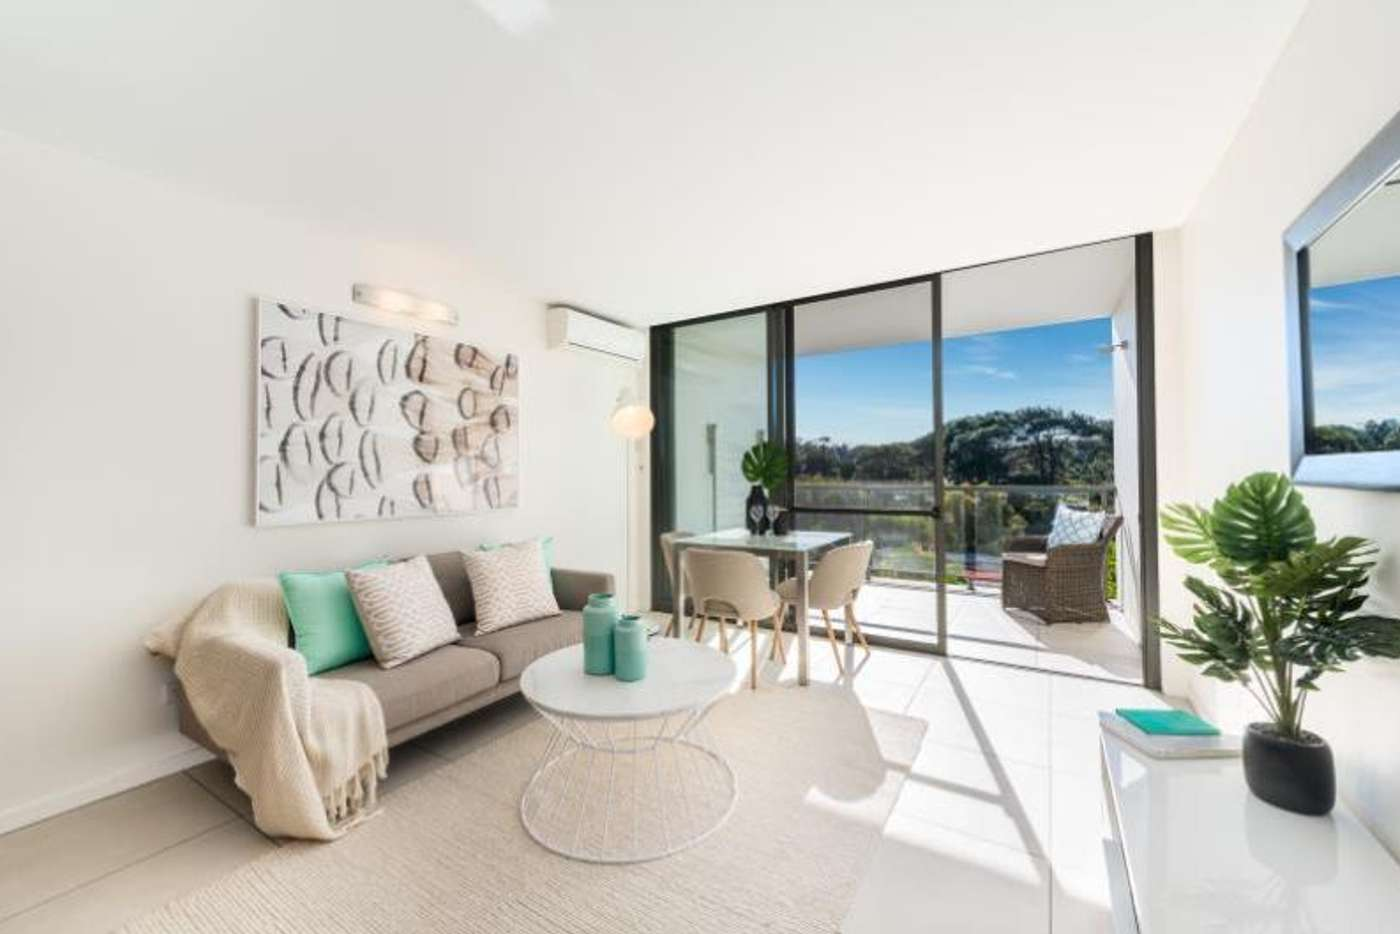 Main view of Homely apartment listing, 15/7-9 Alison Road, Kensington NSW 2033